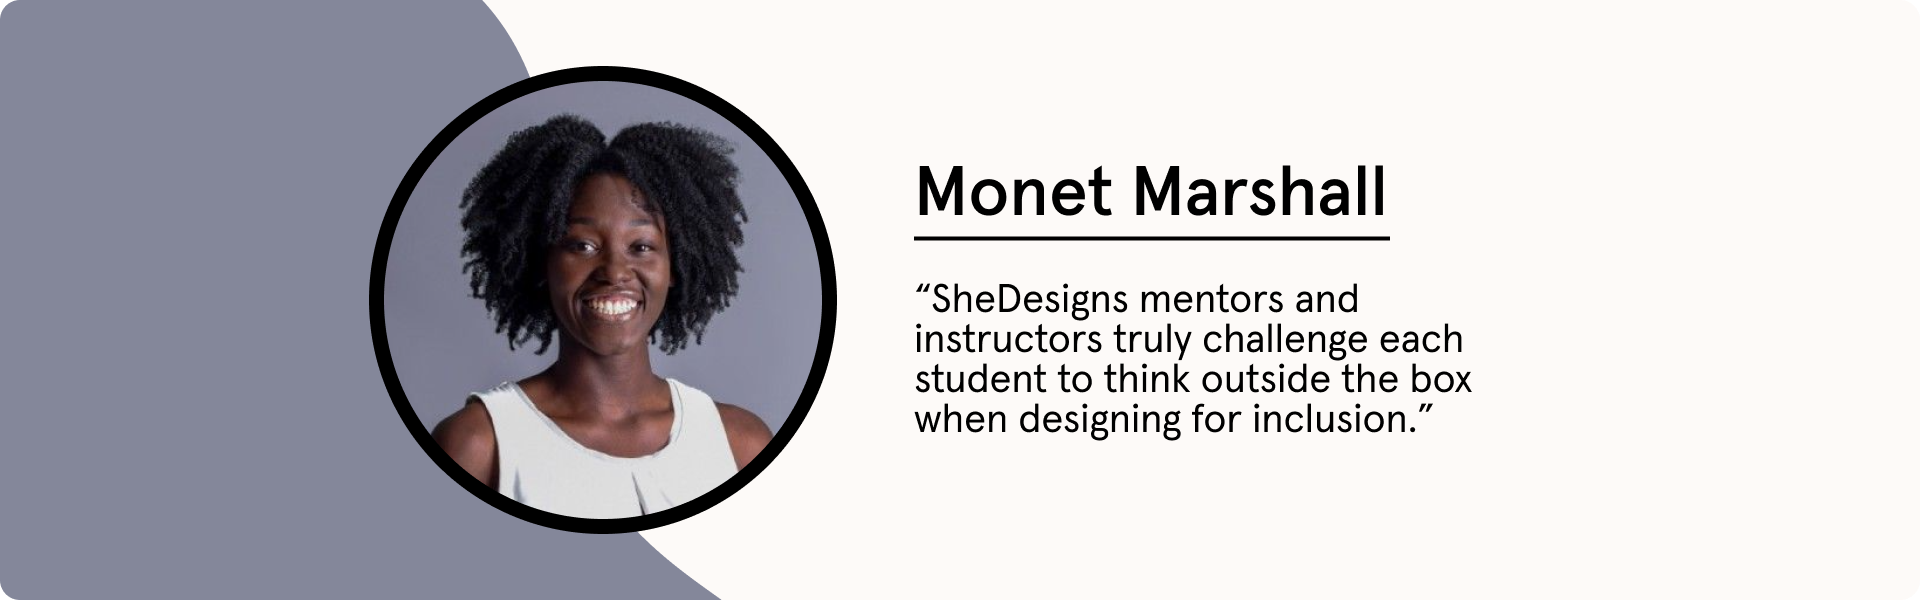 """Monet Marshall says """"Shedesigns mentors and instructors truly challenge each student to think outside the box when designing for inclusion"""""""